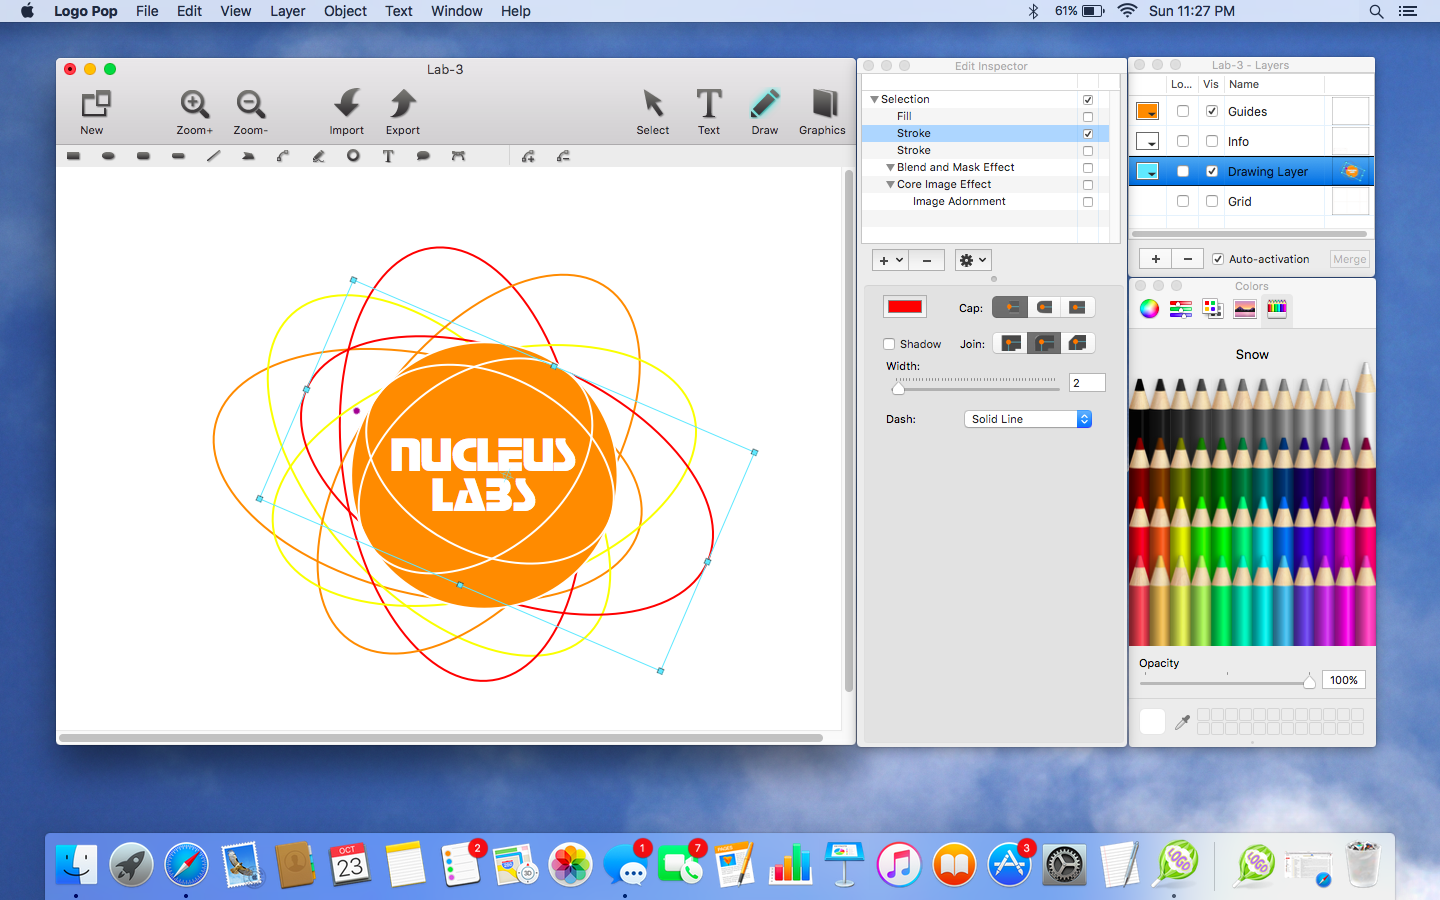 Logo Pop Adds Over 100 New Editable Graphics To Make Logo Design Easier Image